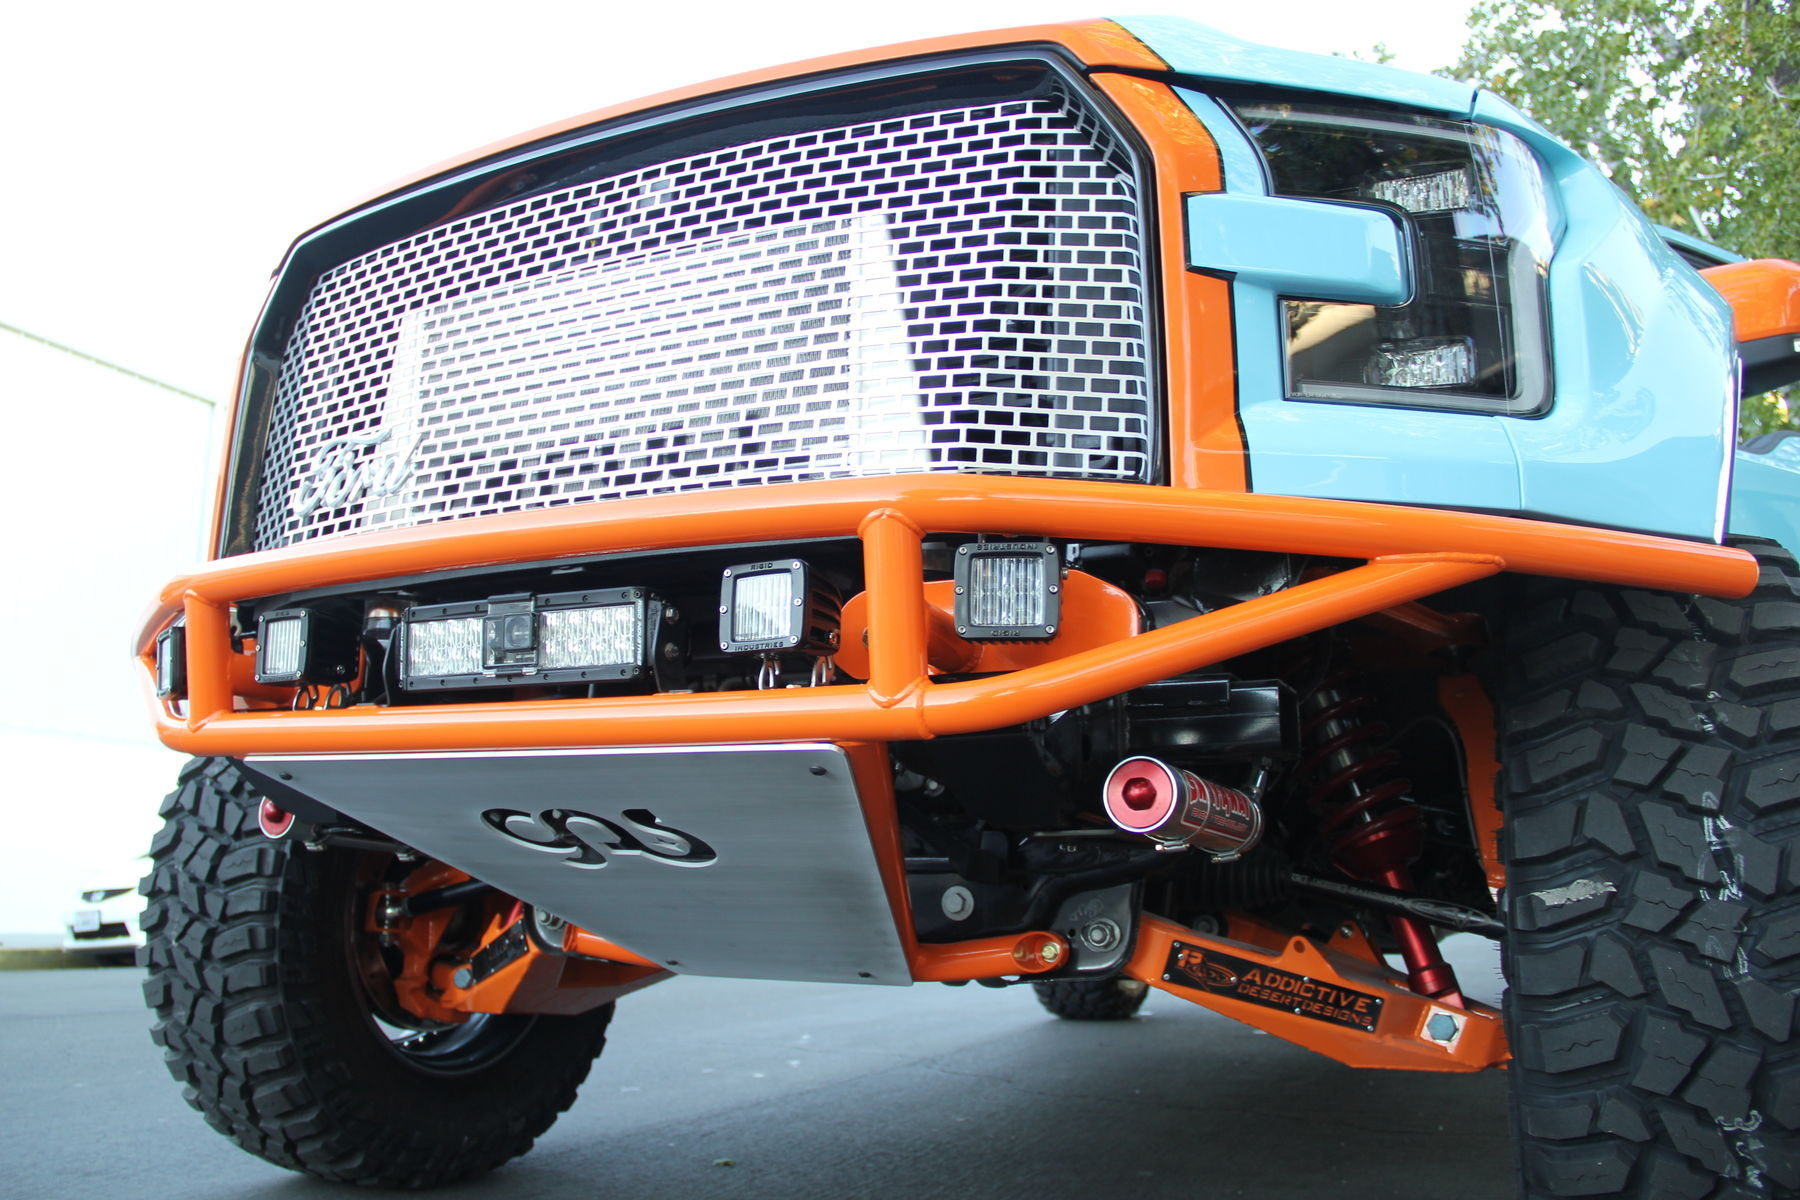 2015 Ford F-150 | 2015 Galpin Auto Sports (GAS) Ford F-150 Grille, Rockplate, and Suspension